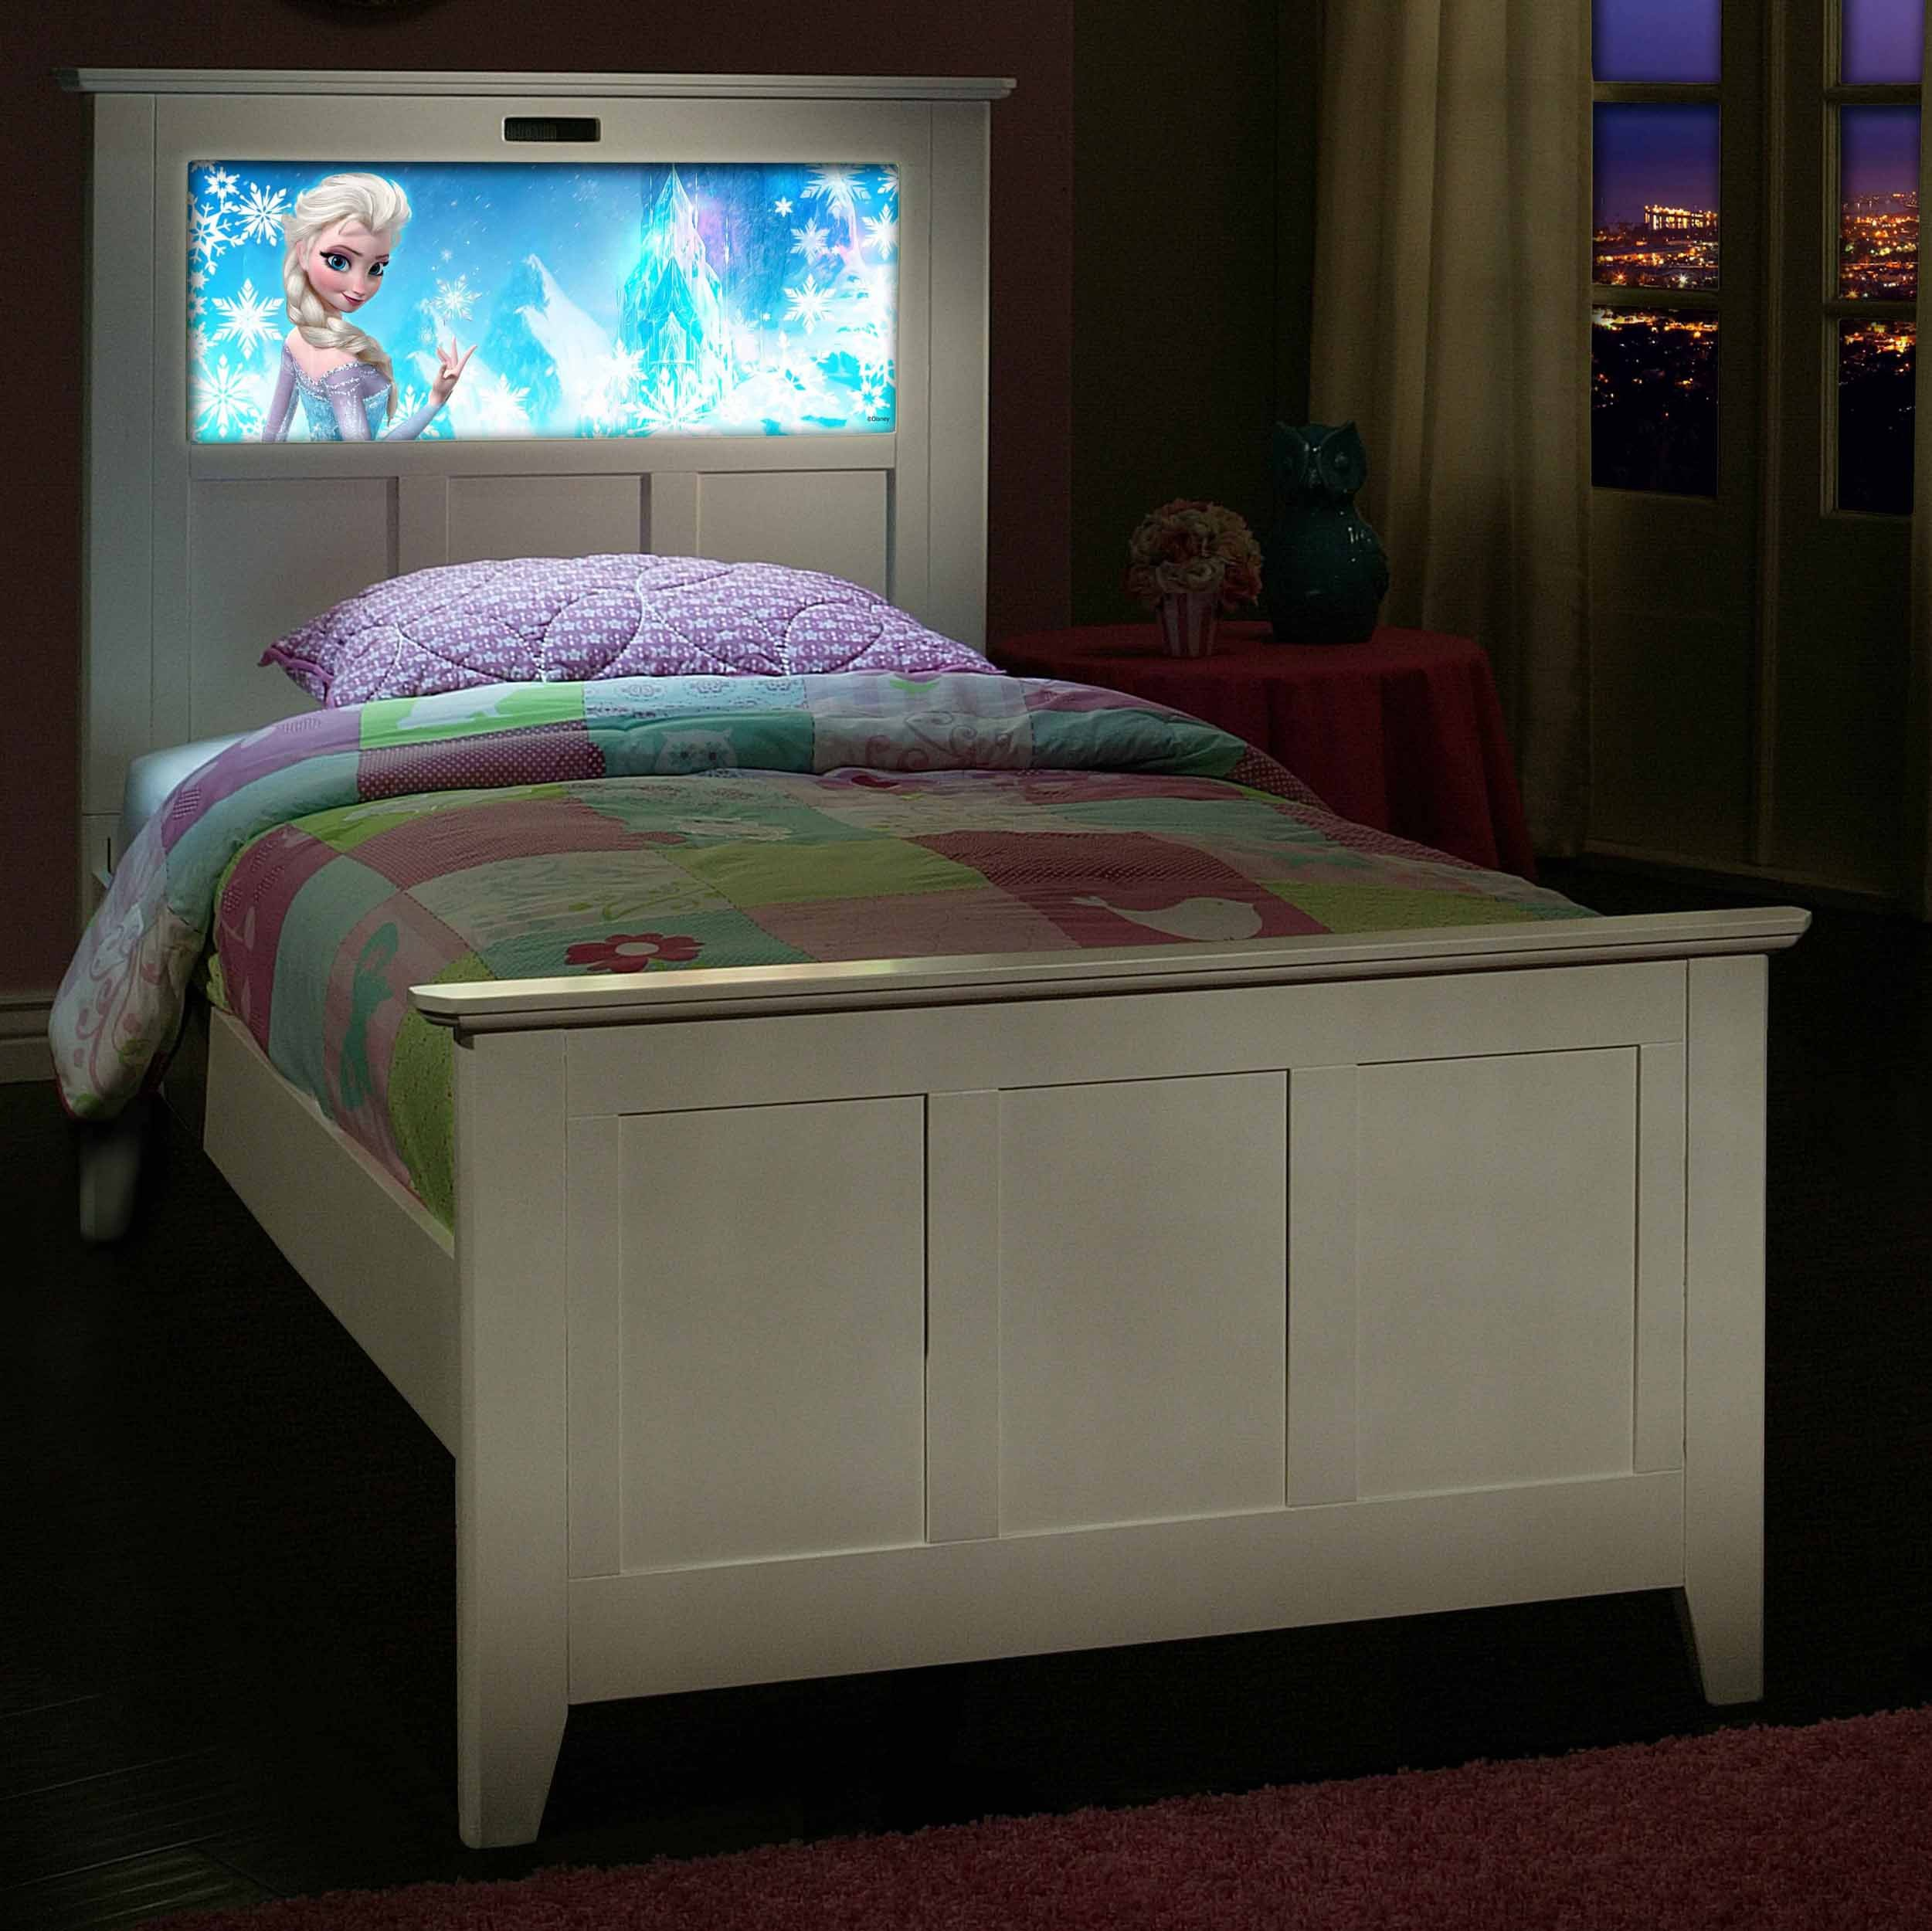 Cool Lightheaded bed